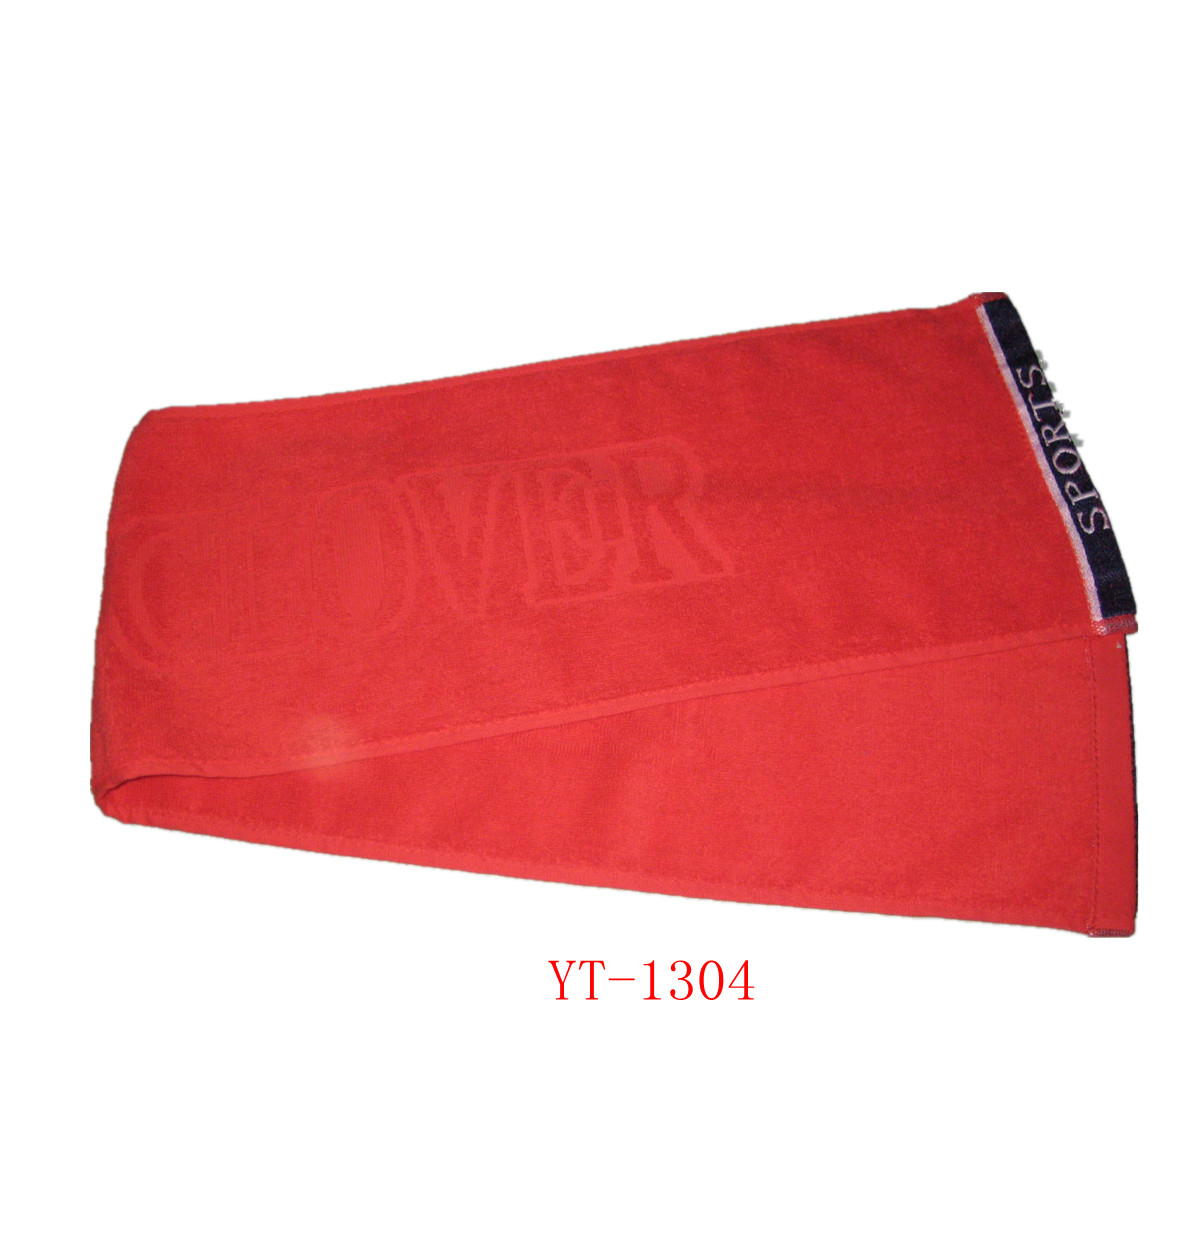 100% Cotton Terry Sports Towel, Jacquard Logo, Red Colors YT-1304